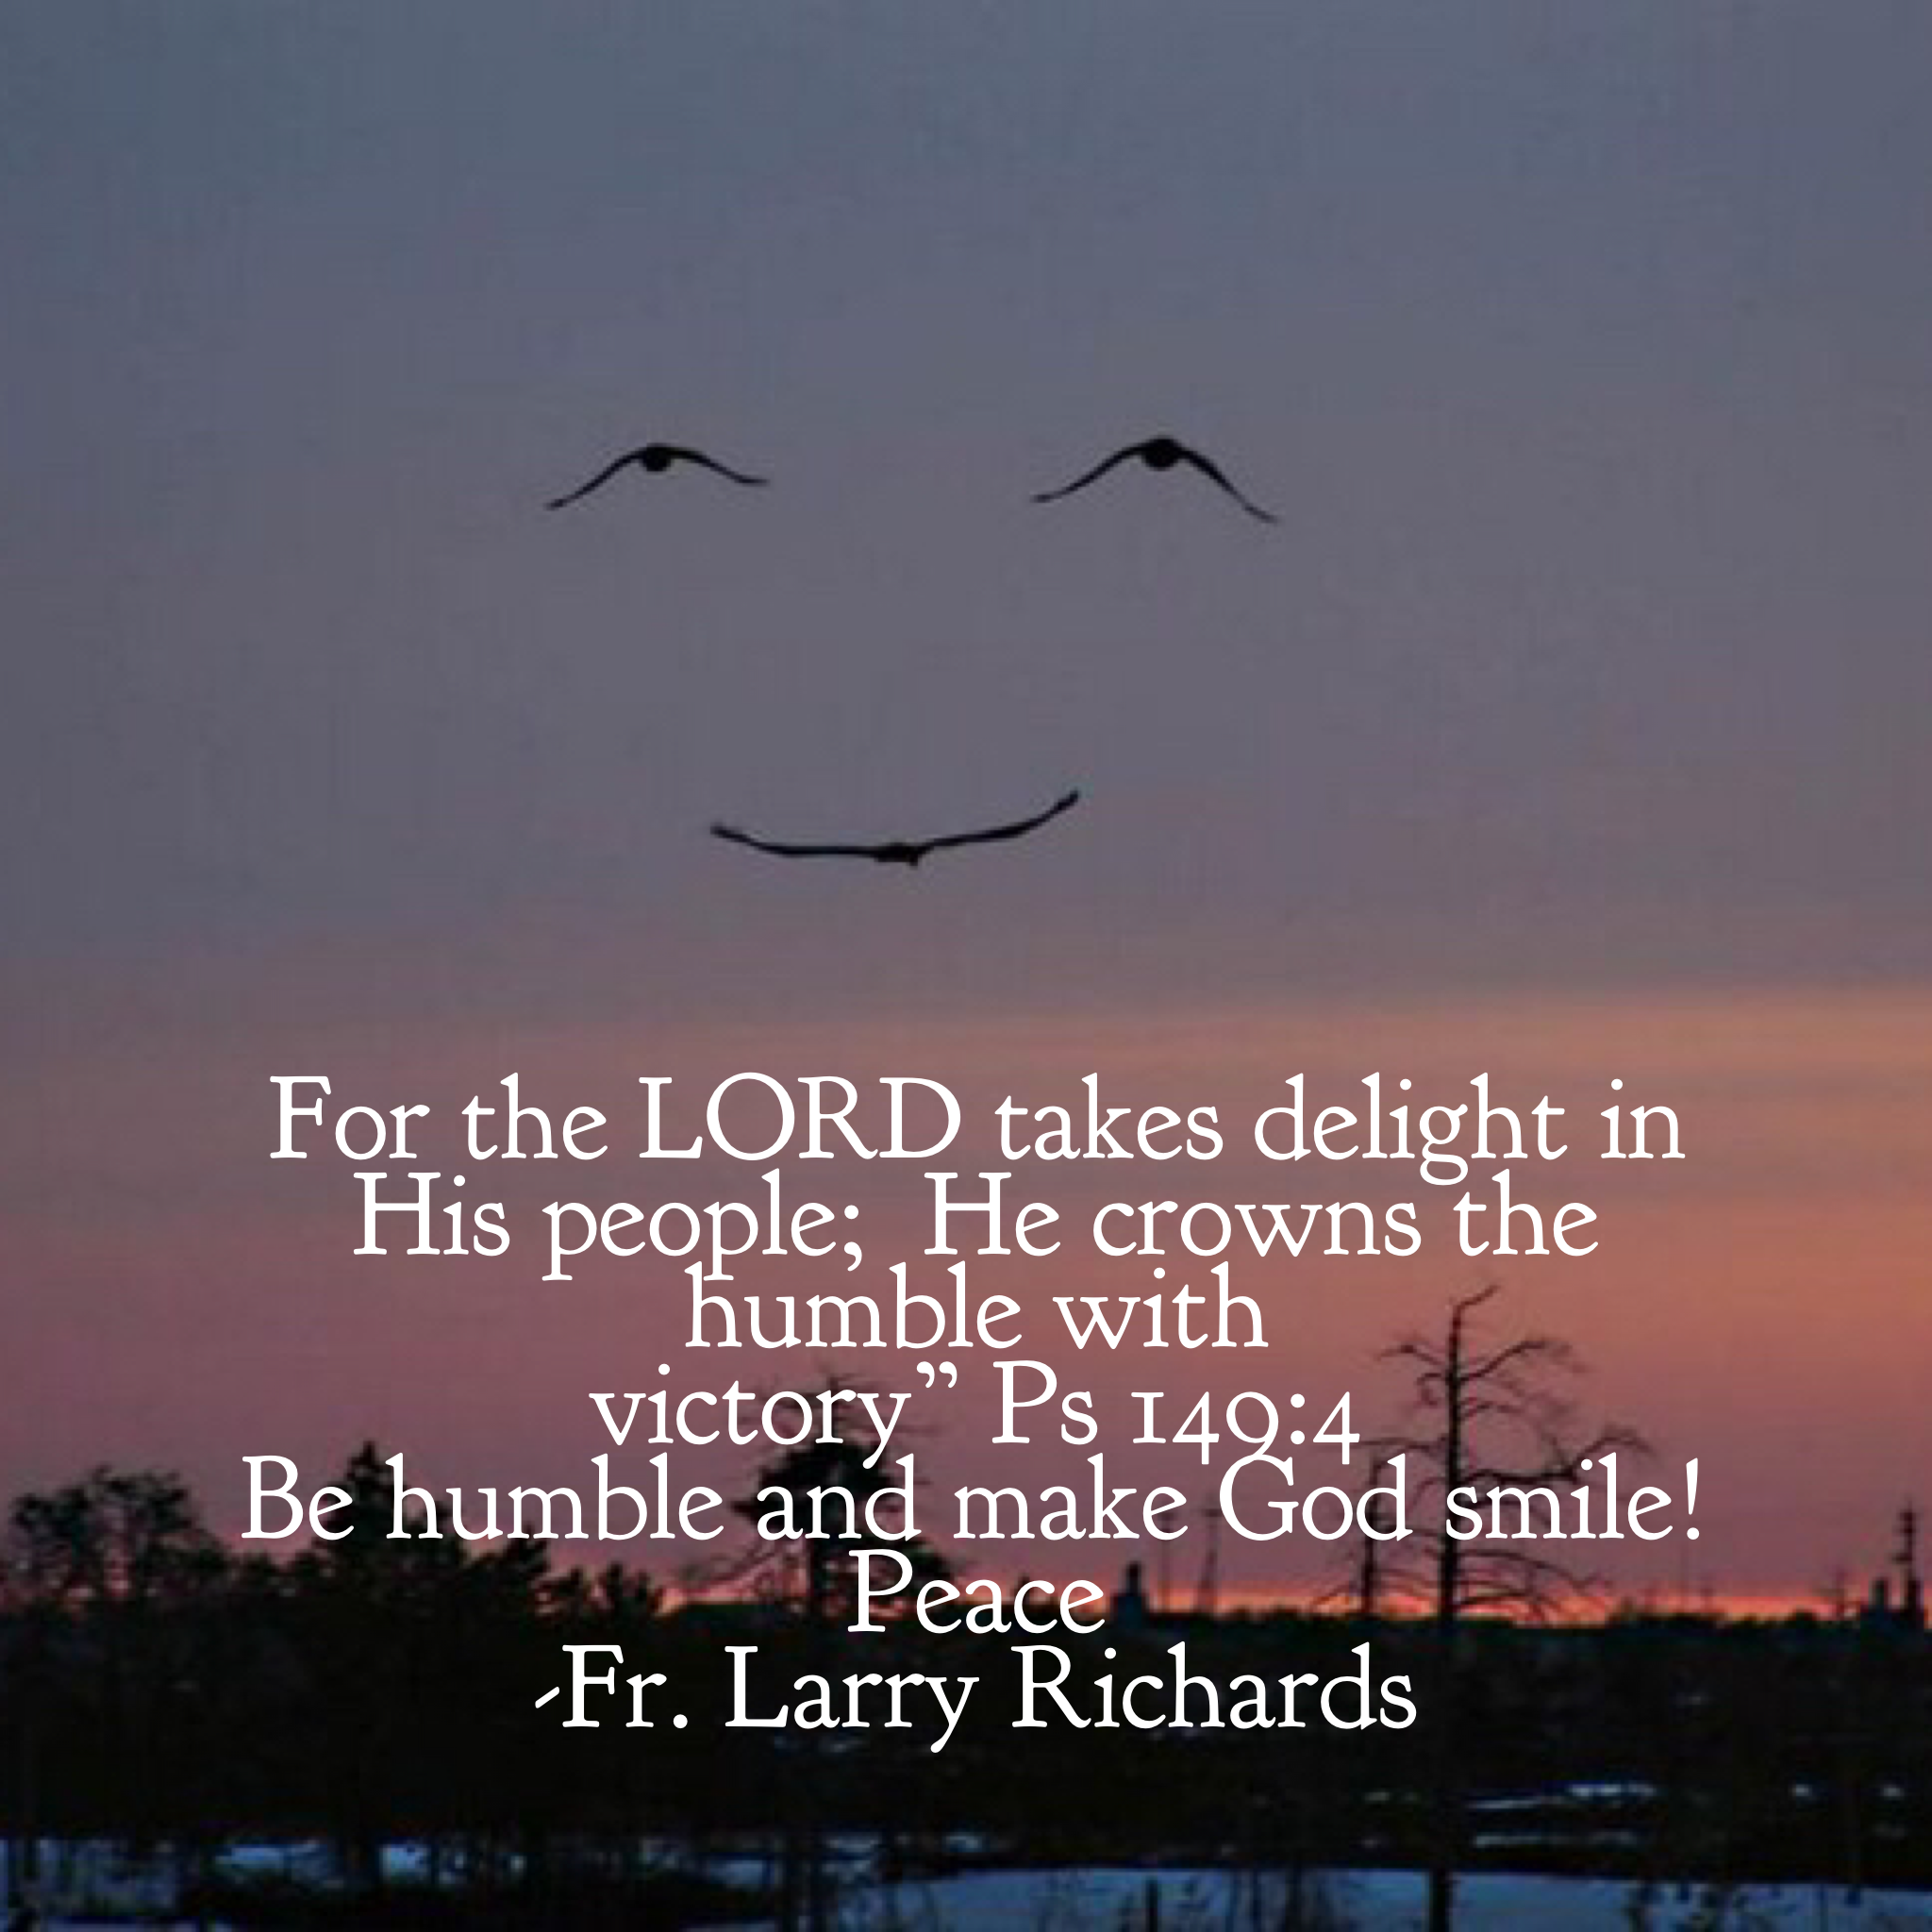 Bible Quotes About Faith Pinfrlarry Richards On Bible Quotes And Inspiration